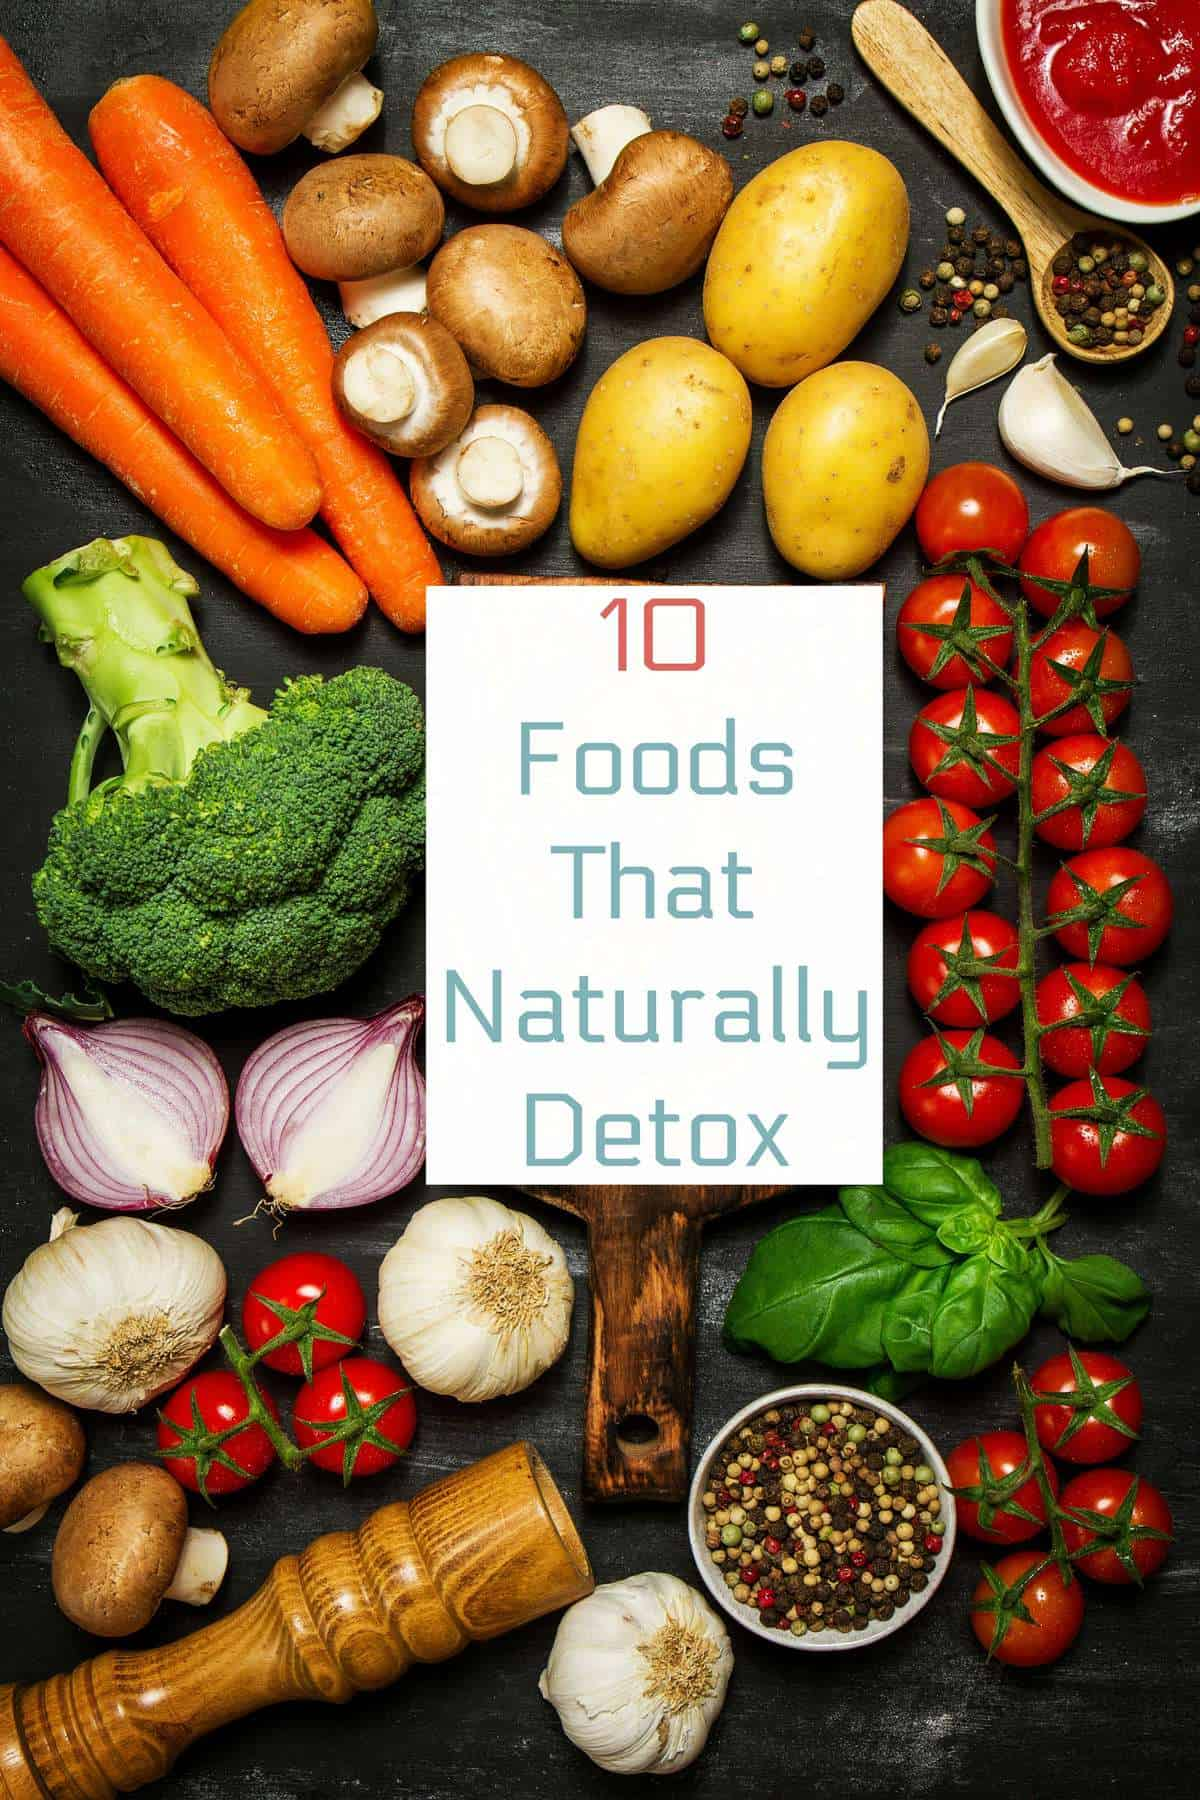 10 Foods That Naturally Detox | Healthy Living in Body and Mind